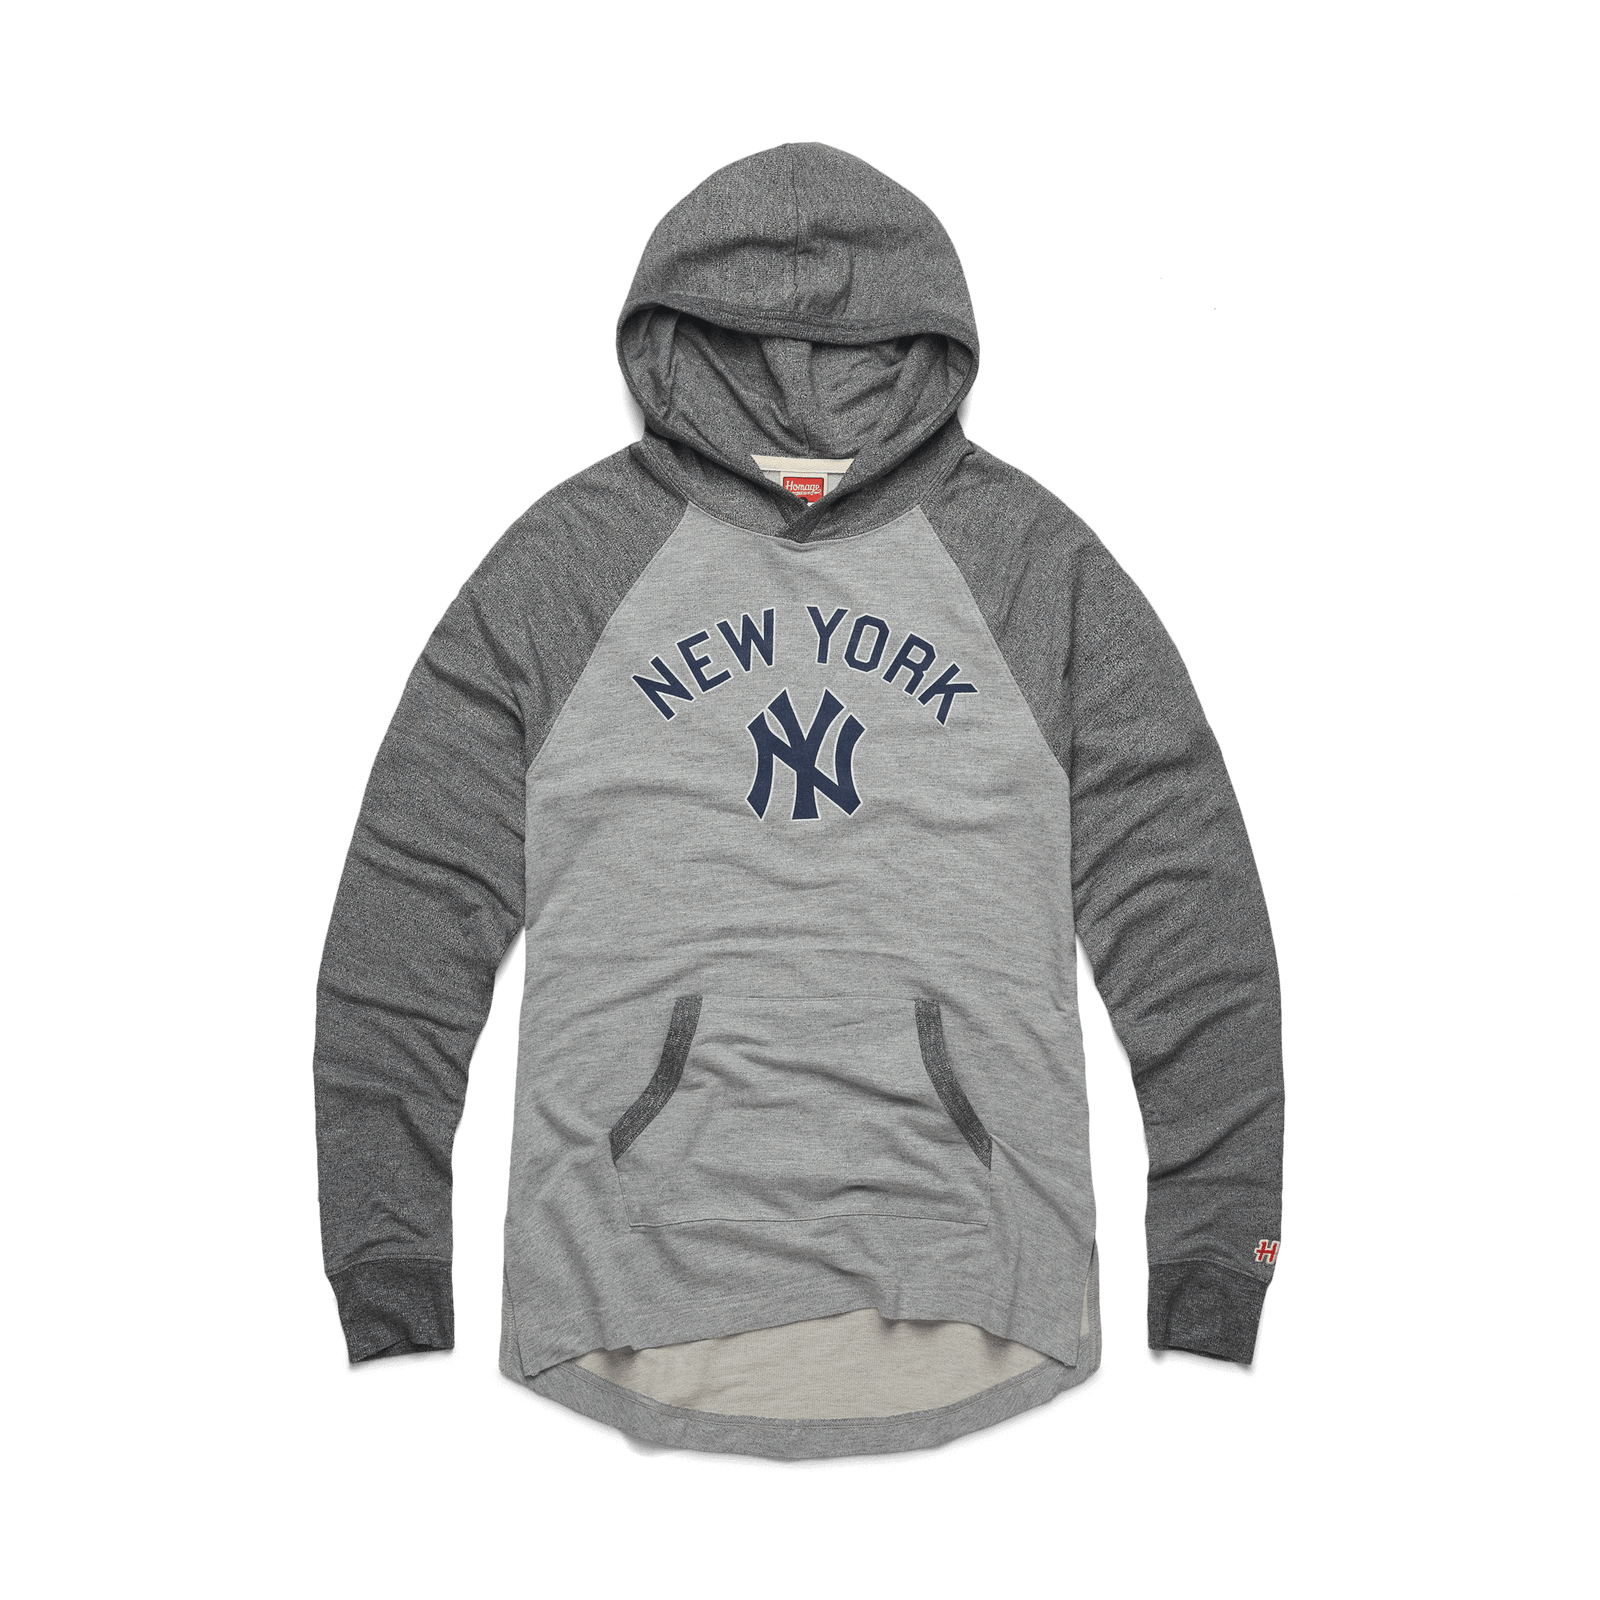 Women's New York Leadoff Lightweight Hoodie